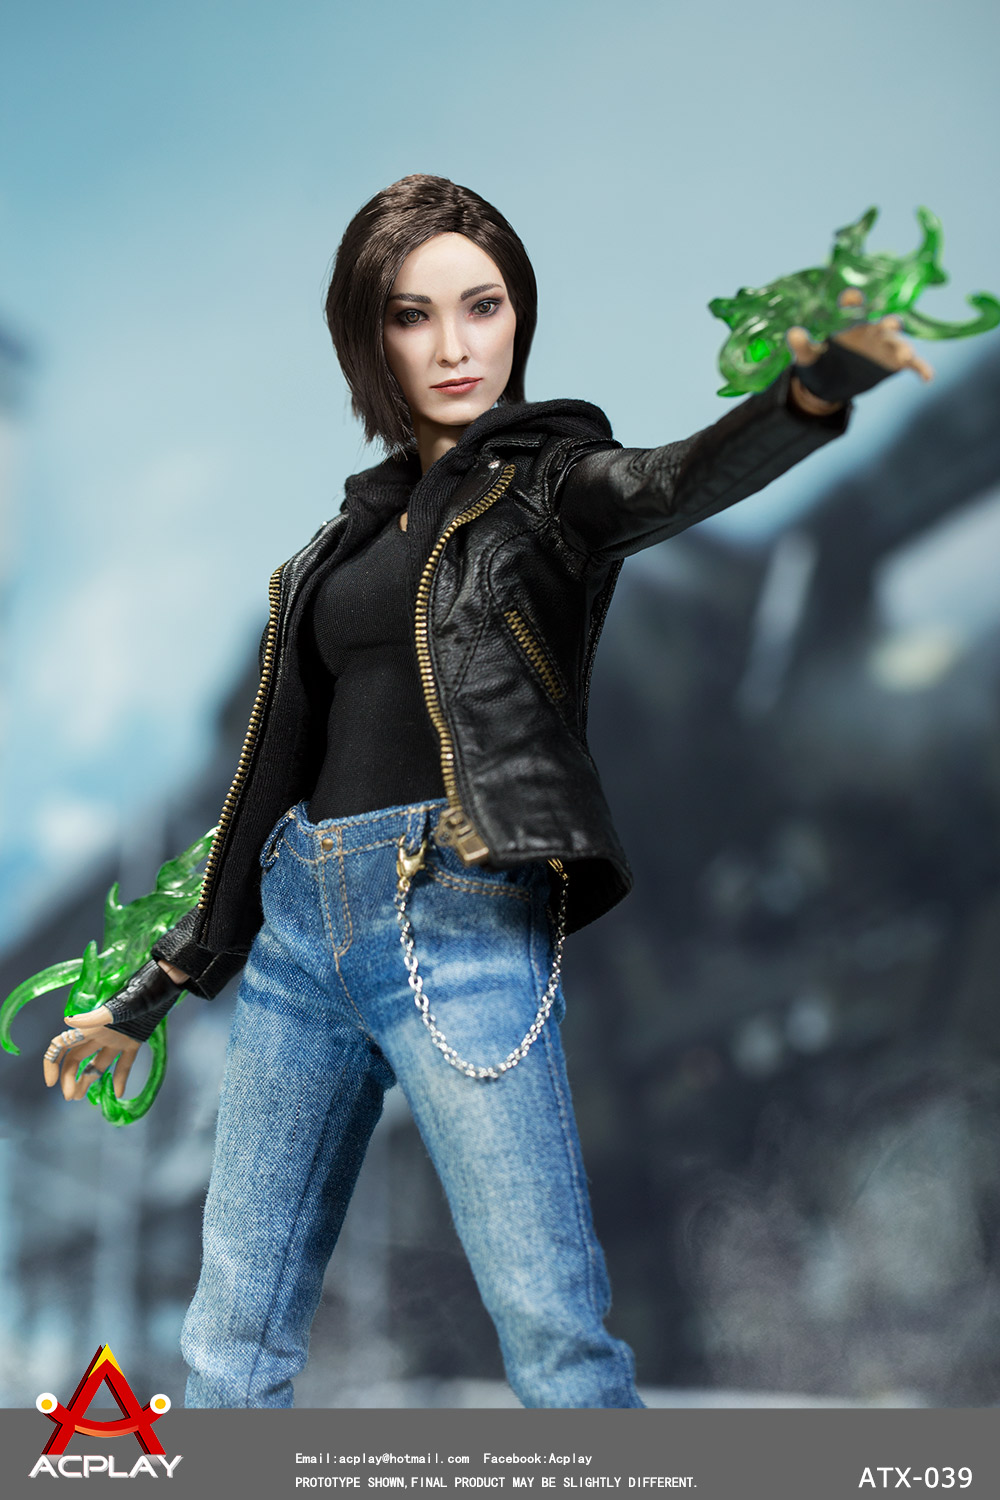 NEW PRODUCT: ACPlay new product: 1/6 ATX039 super hero magnetic girl box doll 8100